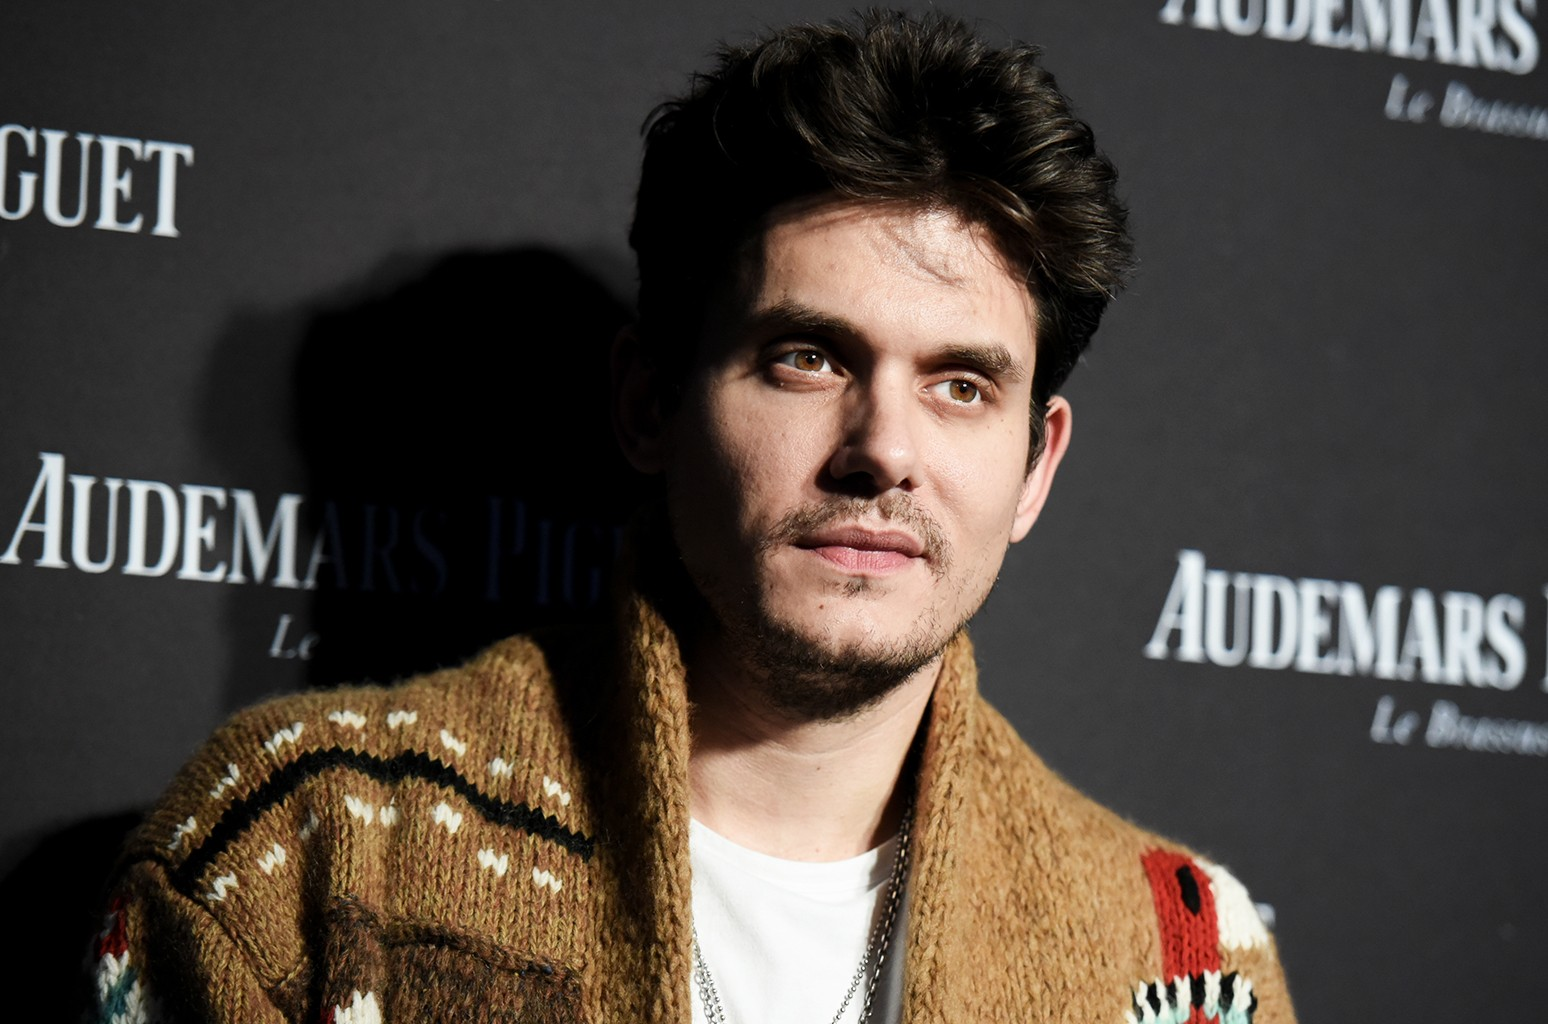 John Mayer photographed in 2015